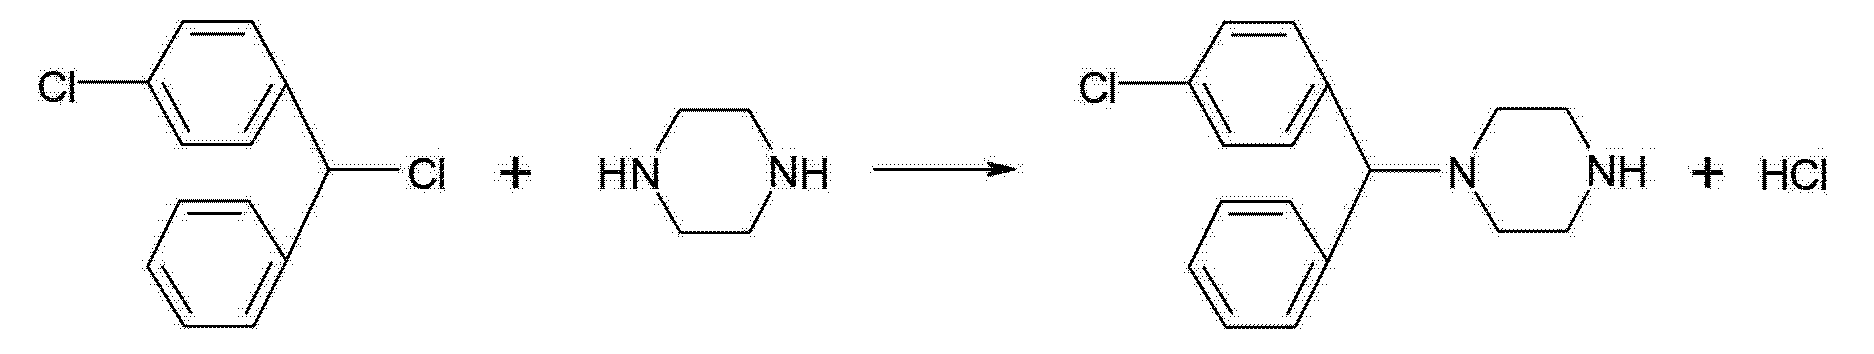 CN103772321A - Synthesis method for meclozine and synthesis